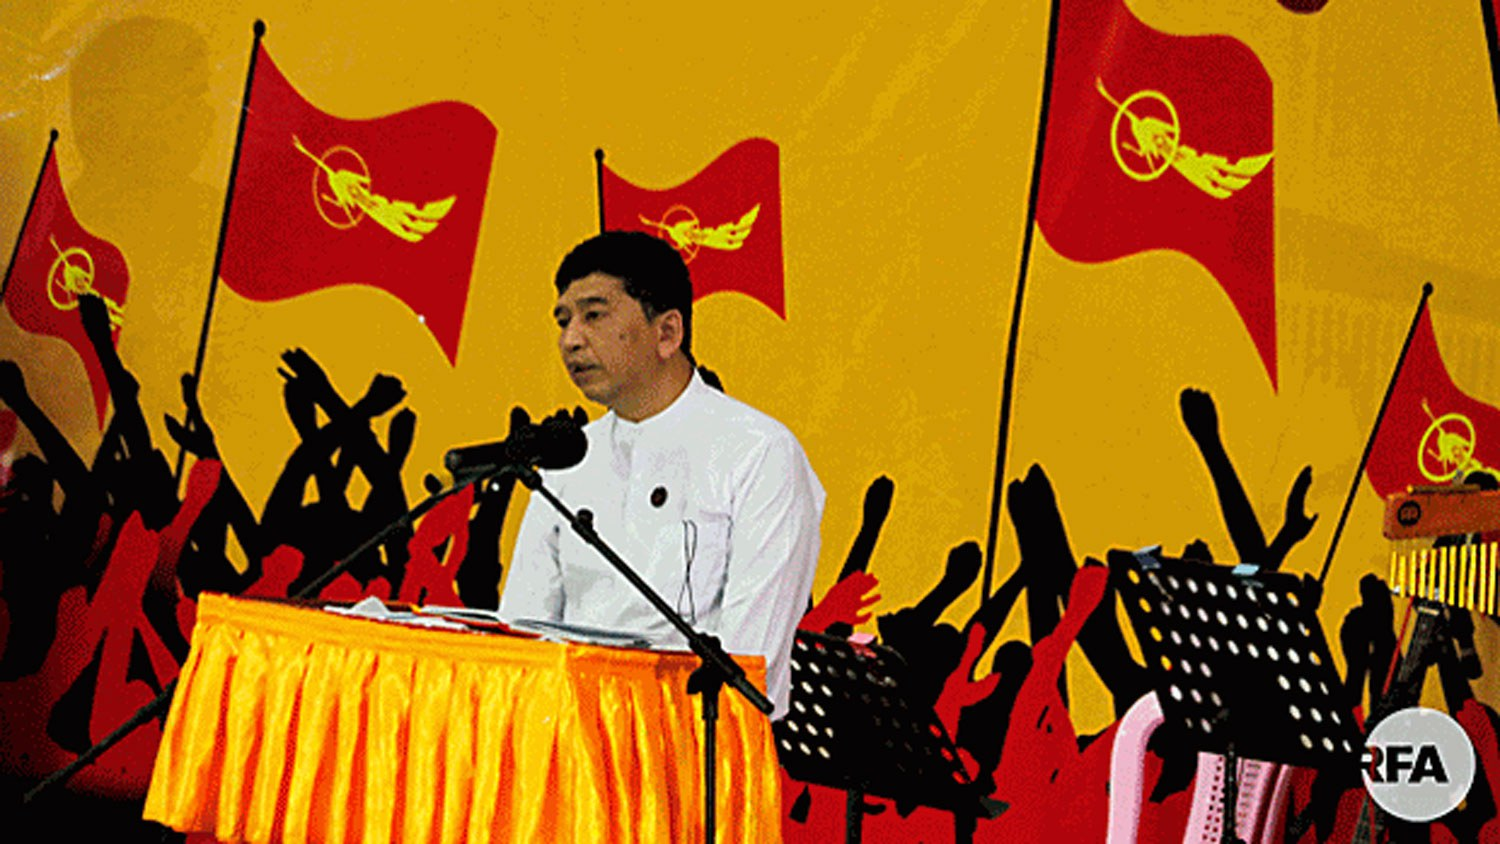 'The Dictators Will Not Have Good Days Forever,' Says Veteran Myanmar Activist